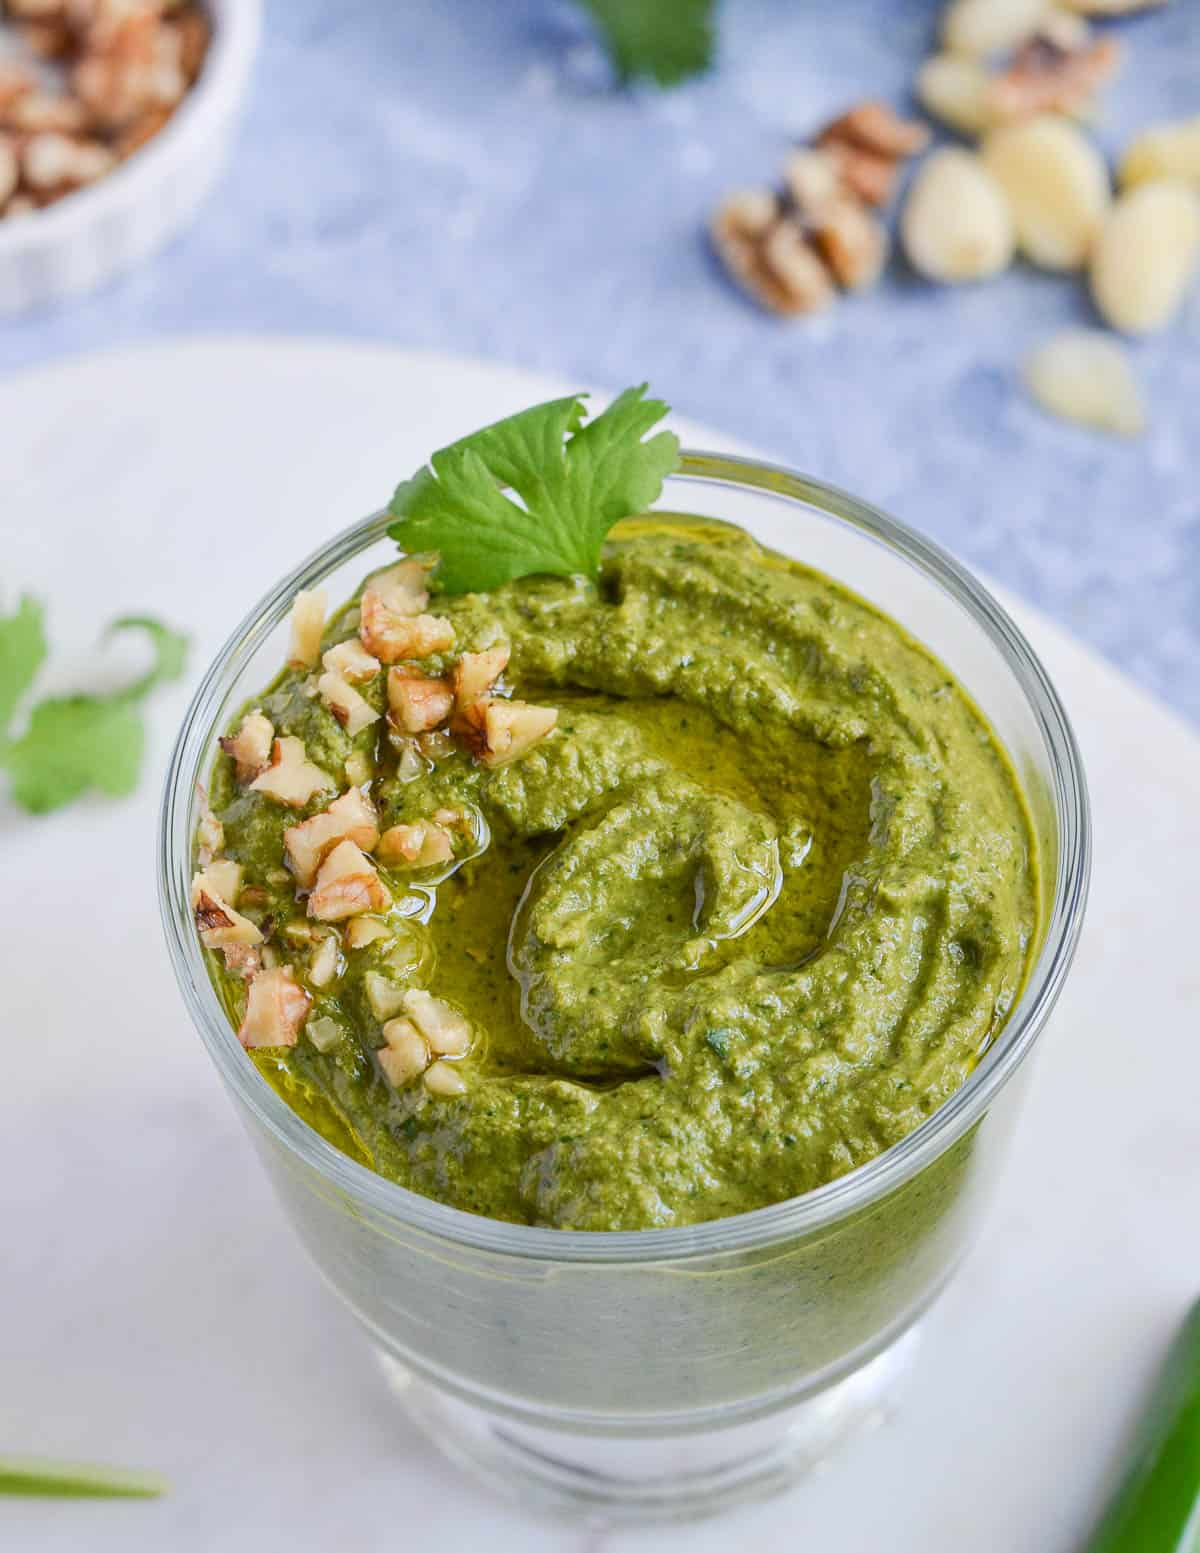 poblano pesto served in a glass and garnished with walnuts